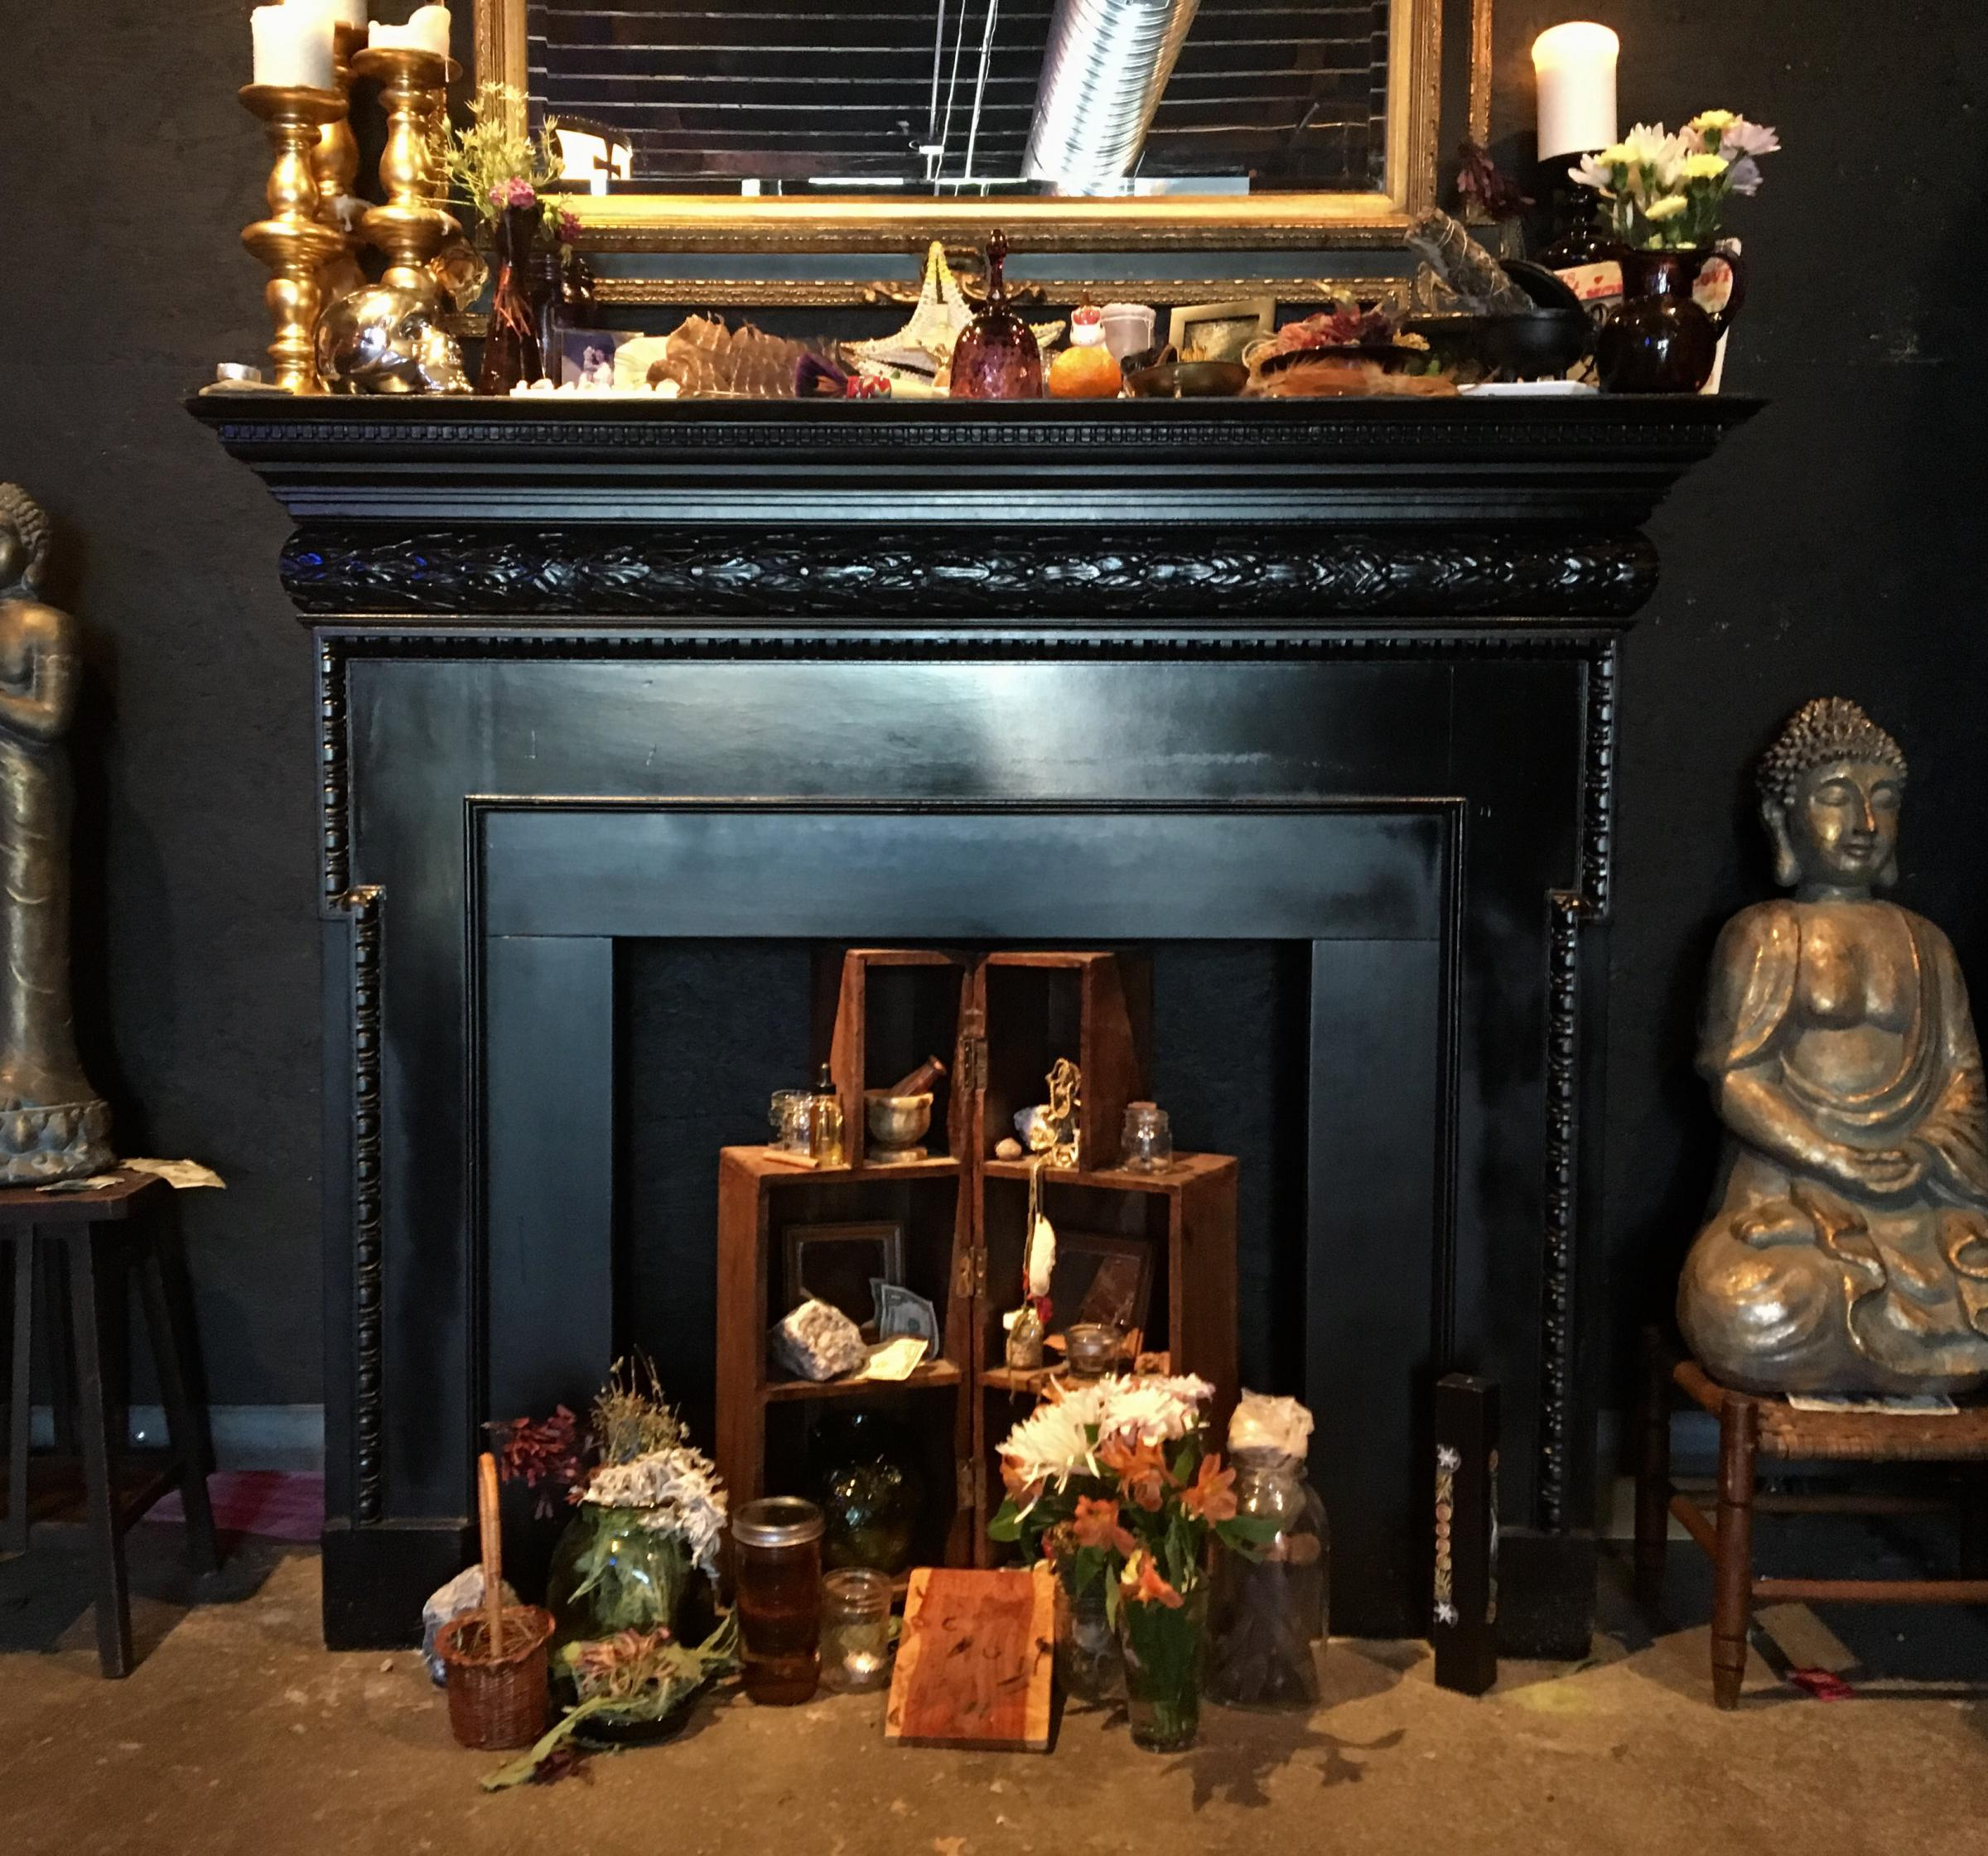 Atlanta Store Brings Witchcraft Out Of The Shadows | Georgia ...